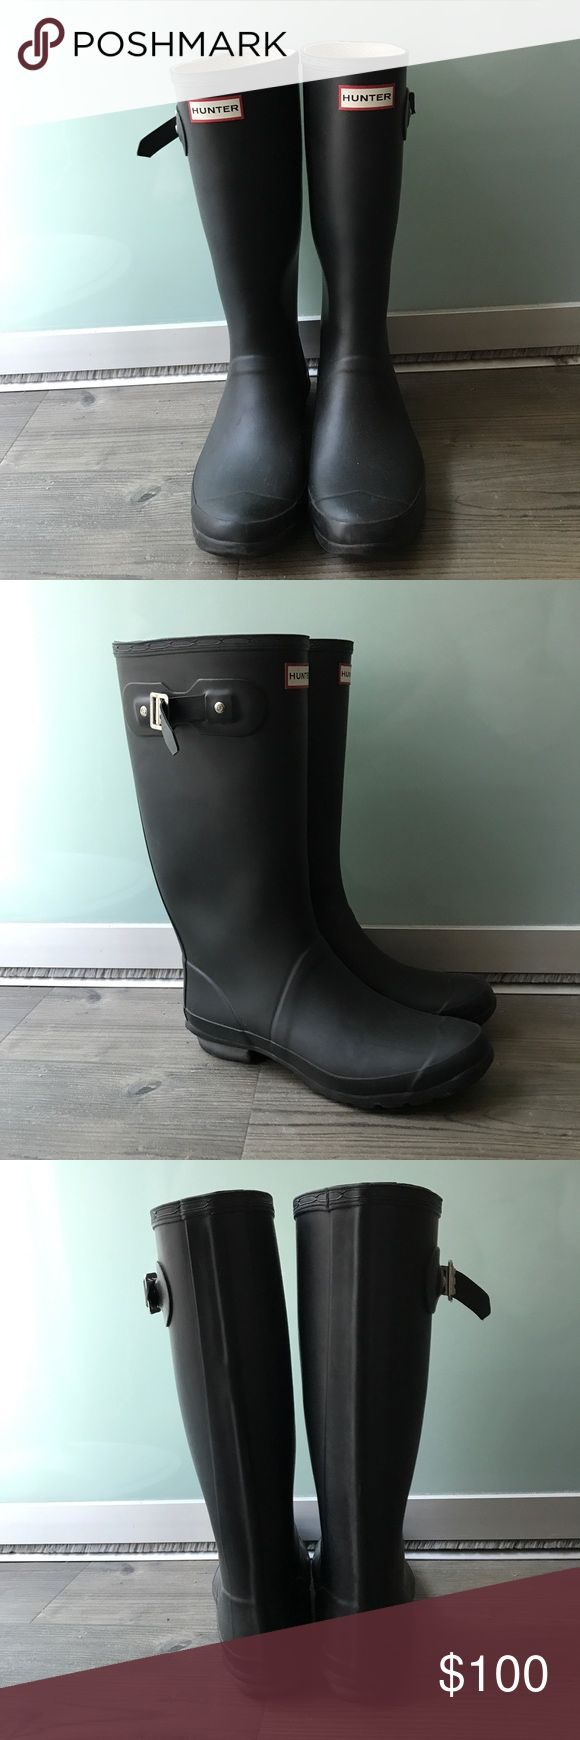 Hunter 'Huntress' Boot (Wide Calf!) Hunter 'Huntress' Boot (Wide Calf!) Semi Matte Black. Size 10. Purchased from Nordstrom. Good used condition.  Moving and having to downsize my closet! Hunter Boots Shoes Winter & Rain Boots